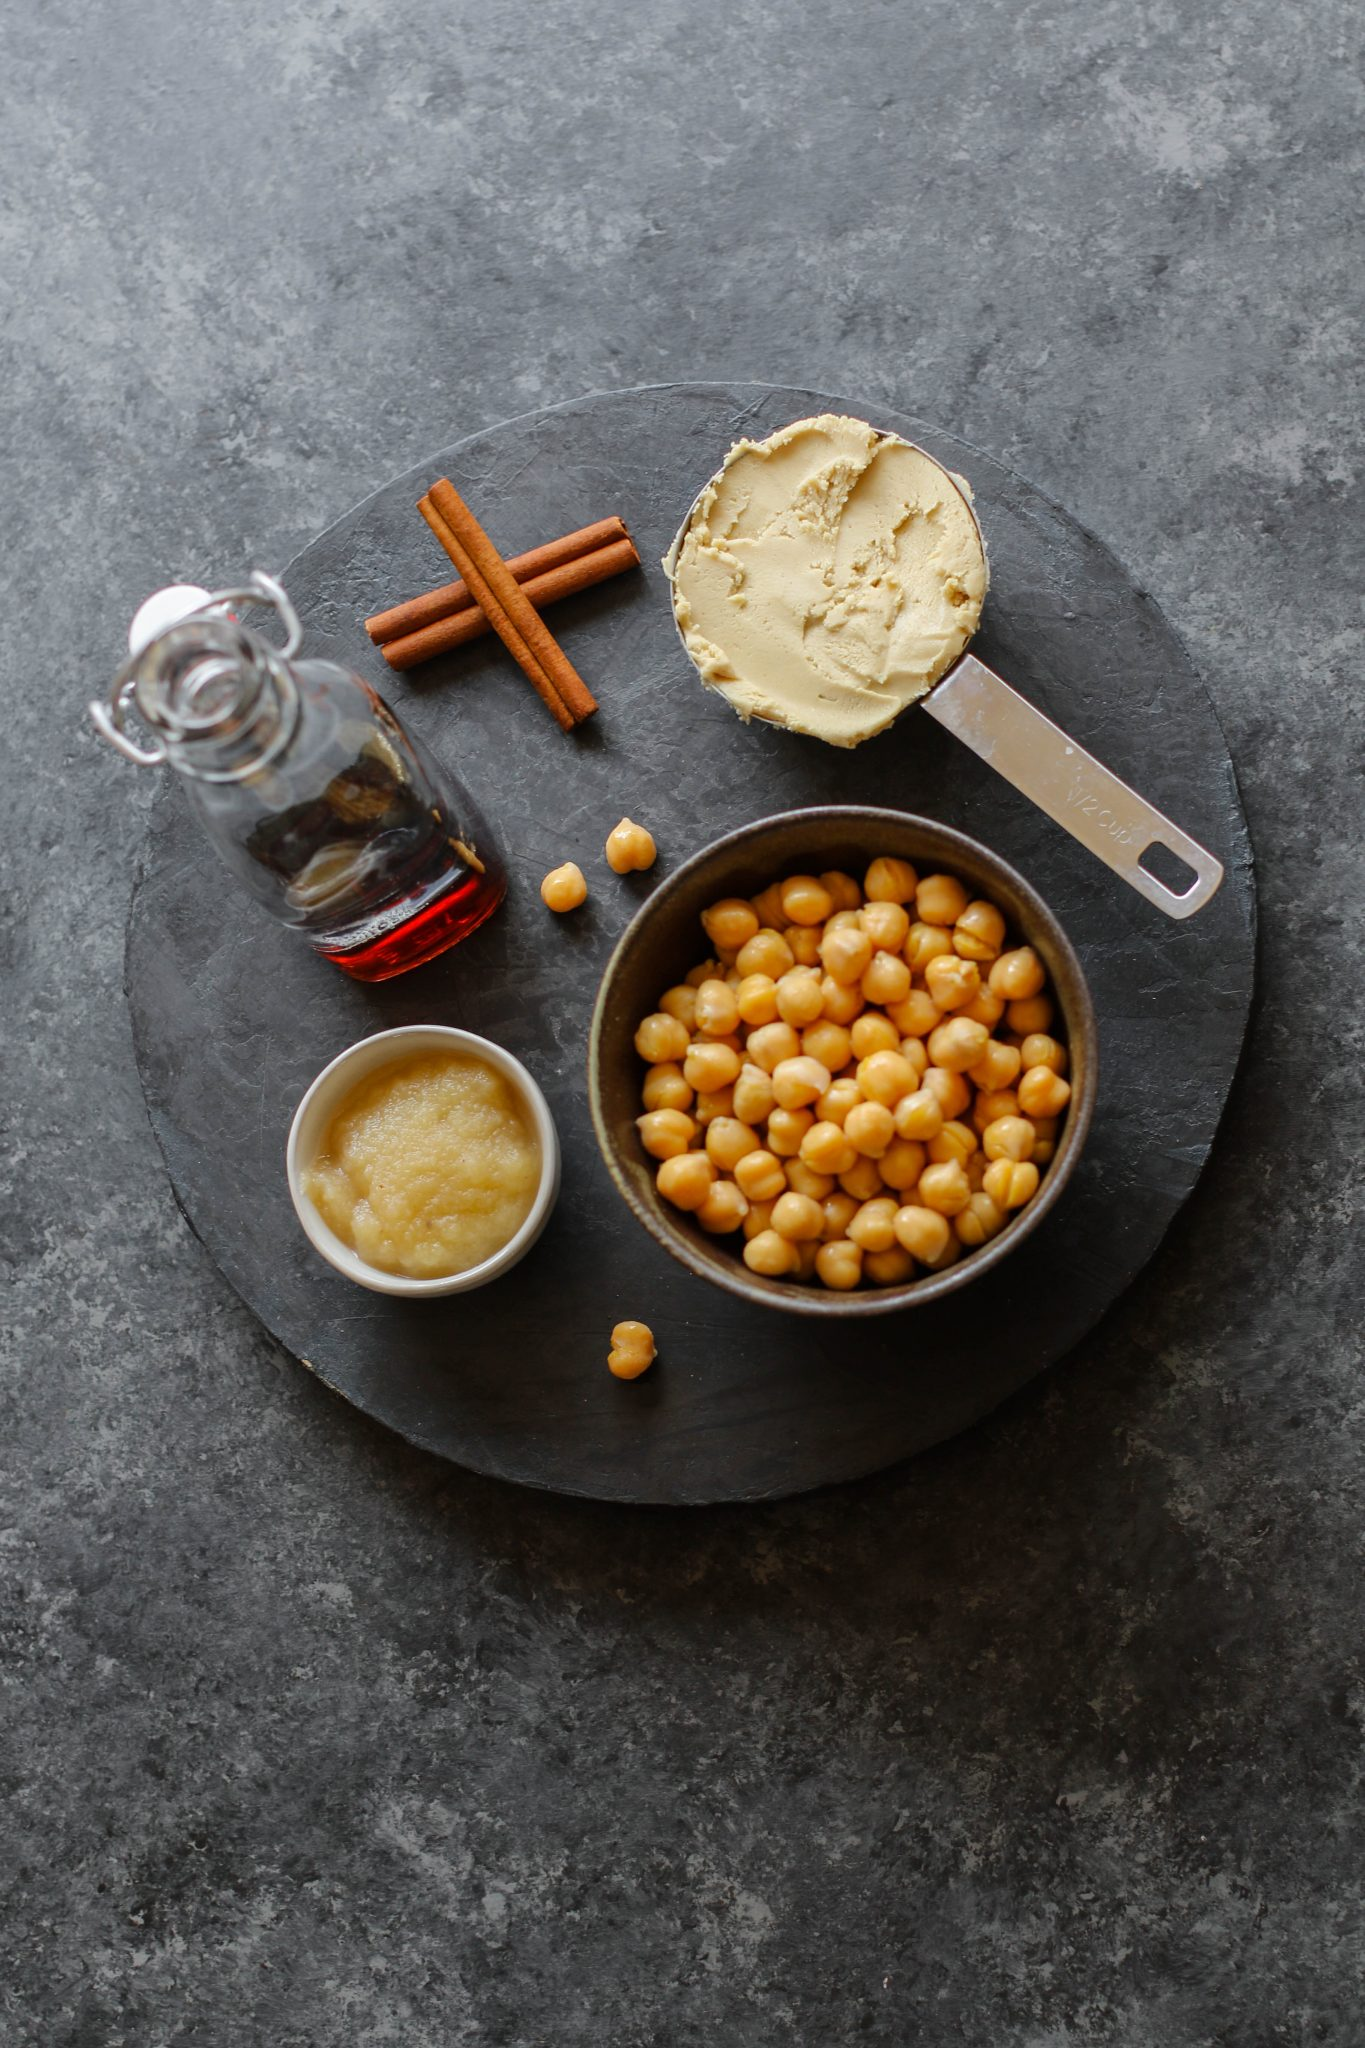 Cashew Butter Chickpea Snack Cookie Ingredients